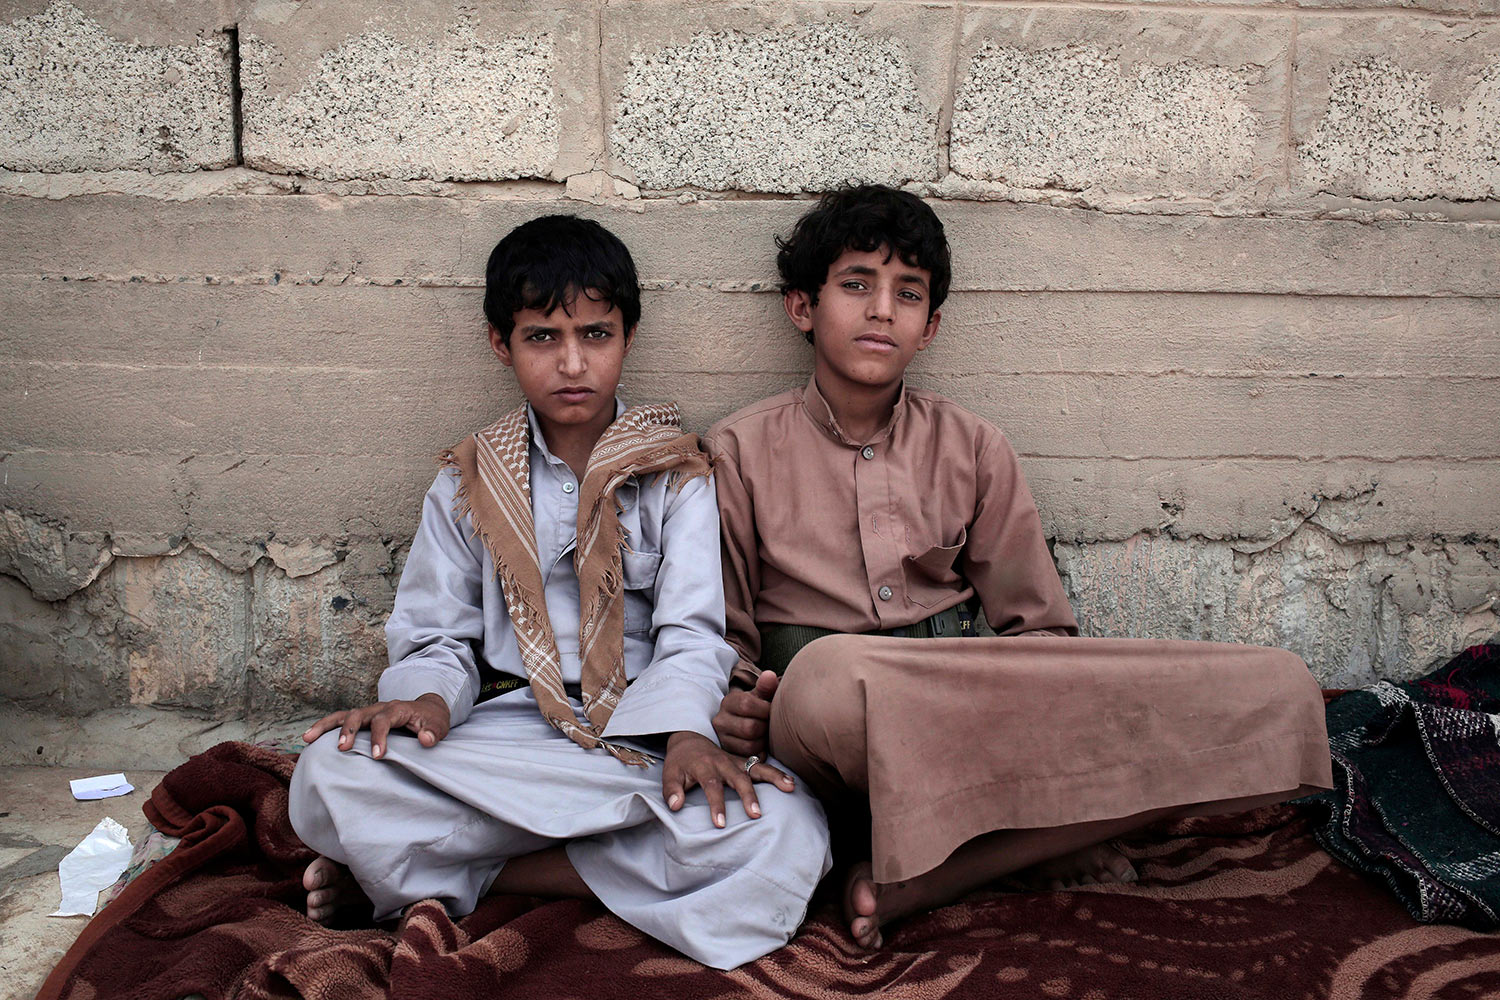 In this July 27, 2018 photo, 14 year-old Morsal Al Amery, right, and 14 year-old Abdel Hamid Saleh, pose for a photograph at a camp for displaced persons where they took shelter, in Marib, Yemen, (AP Photo/Nariman El-Mofty)